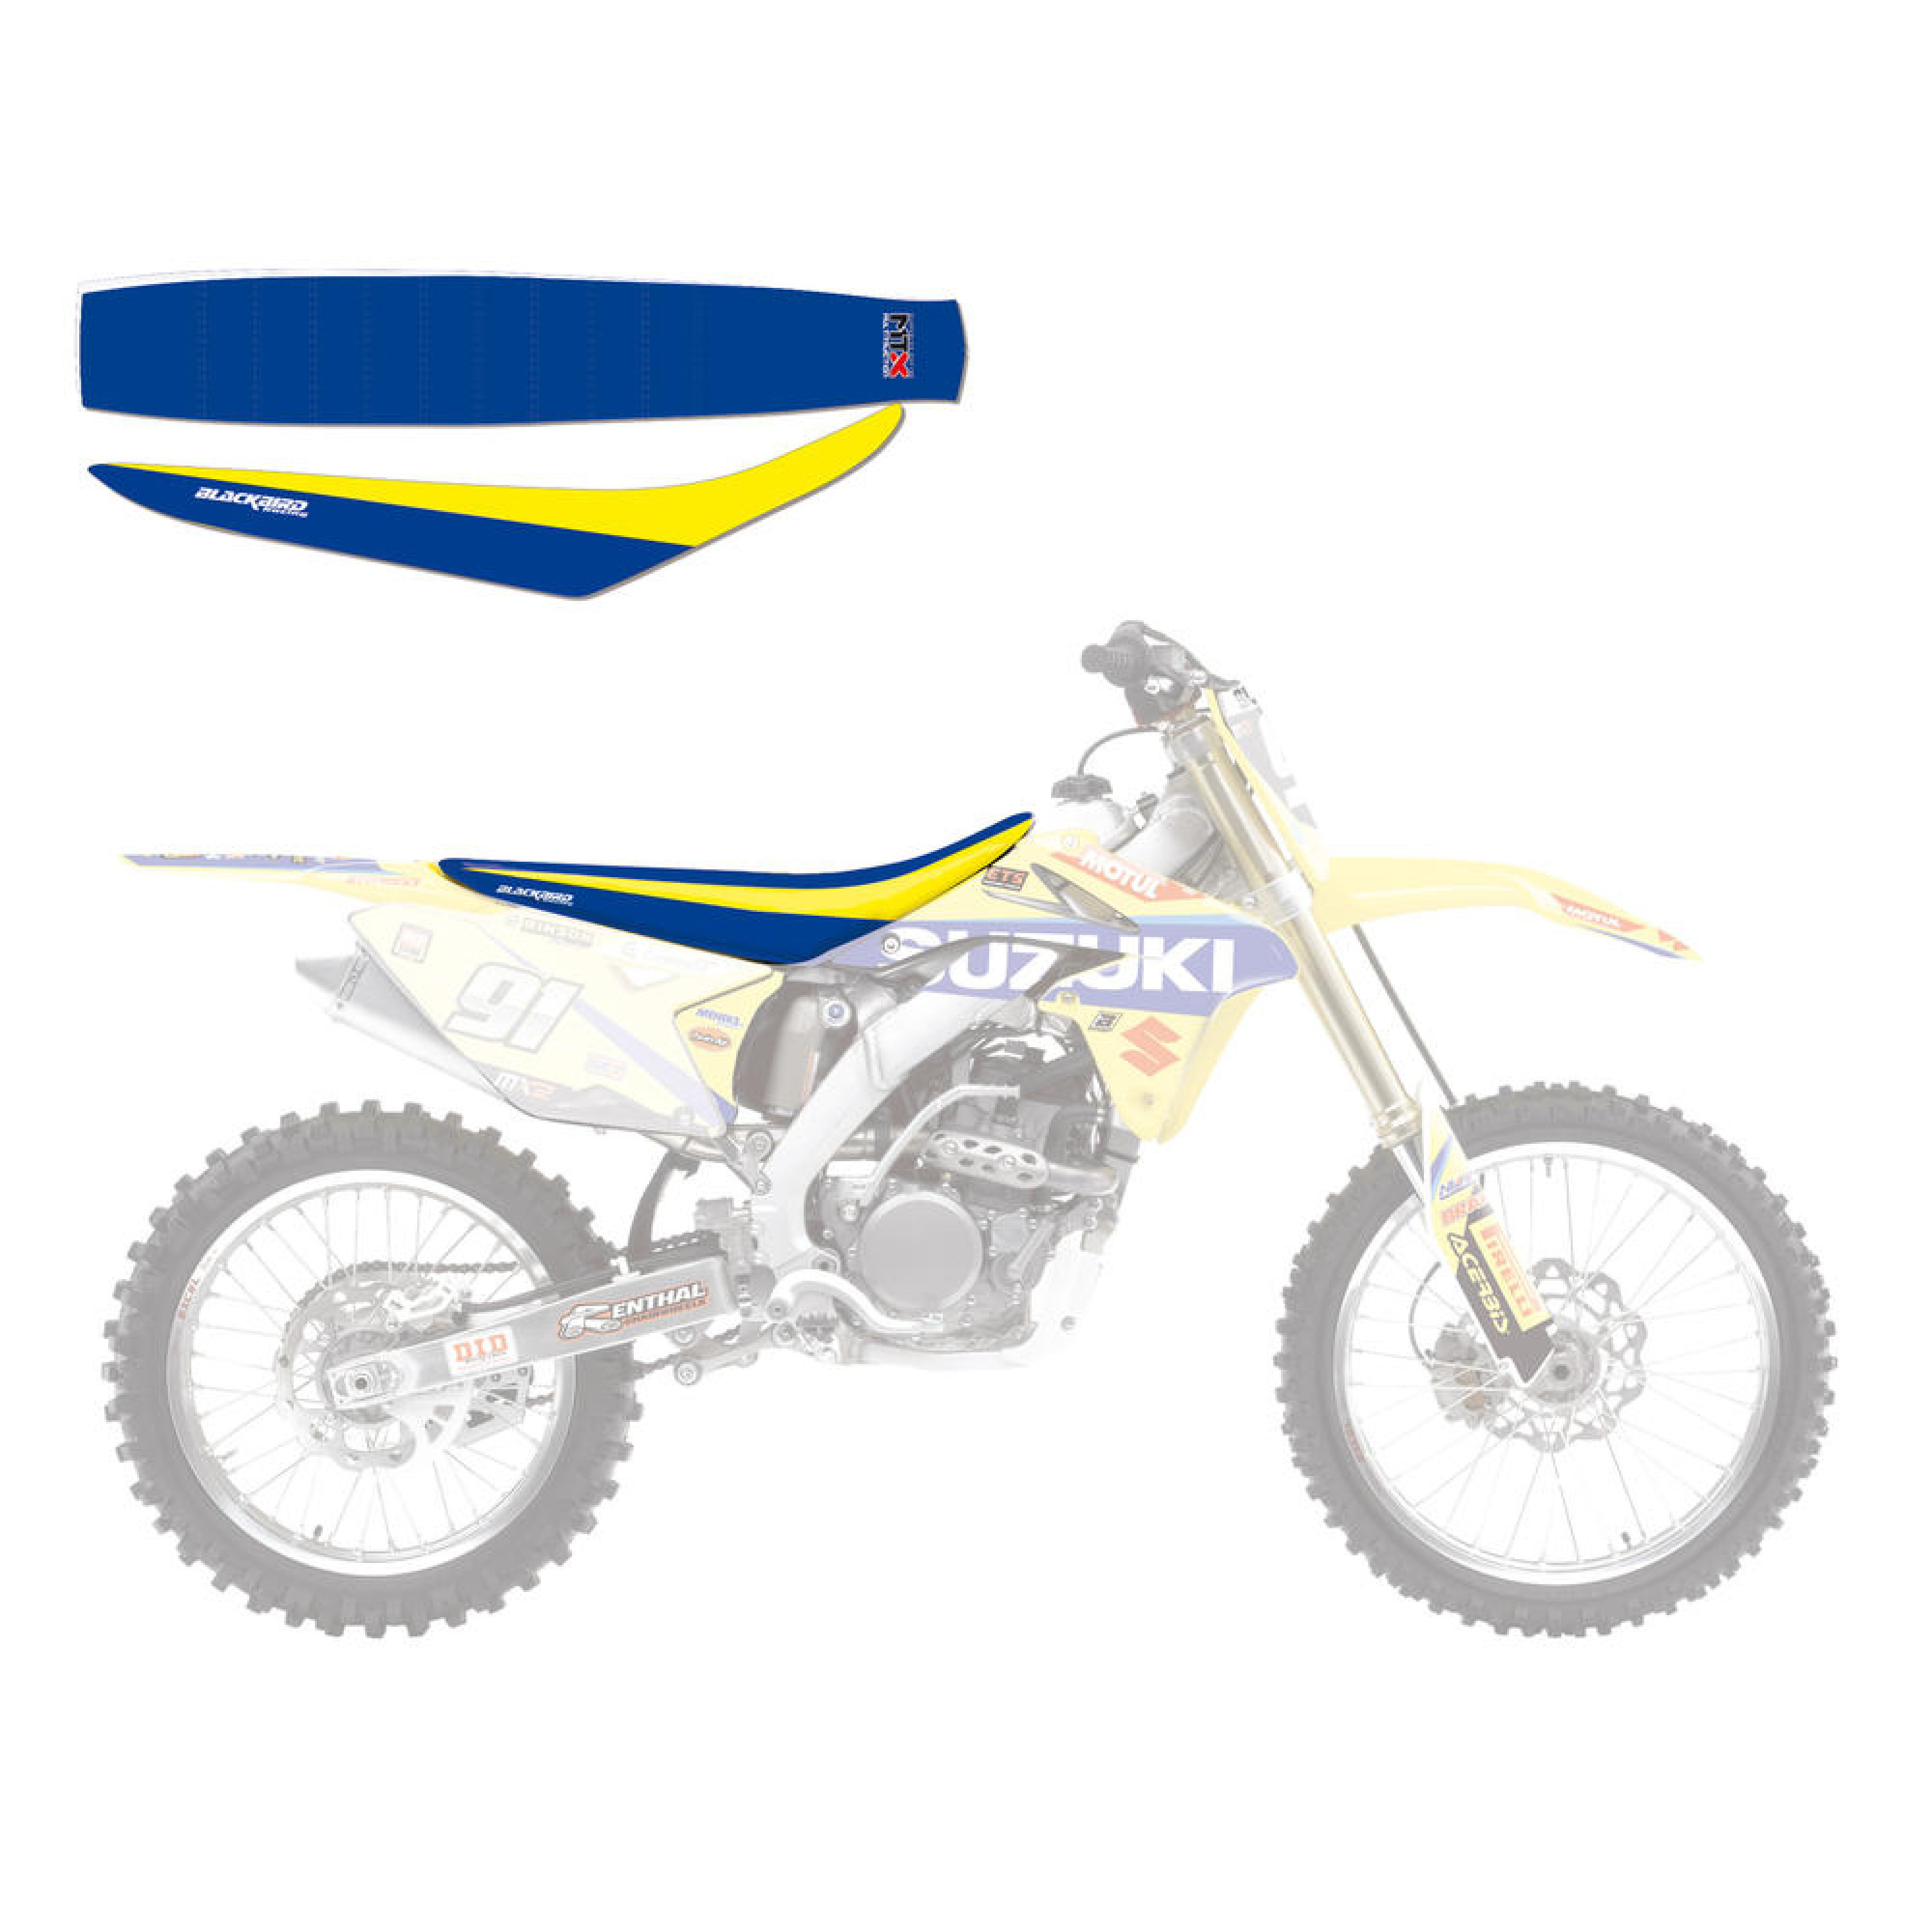 Sadelöverdrag Team Suzuki Replica Wold MX2 Gul/Blå Blackbird Racing